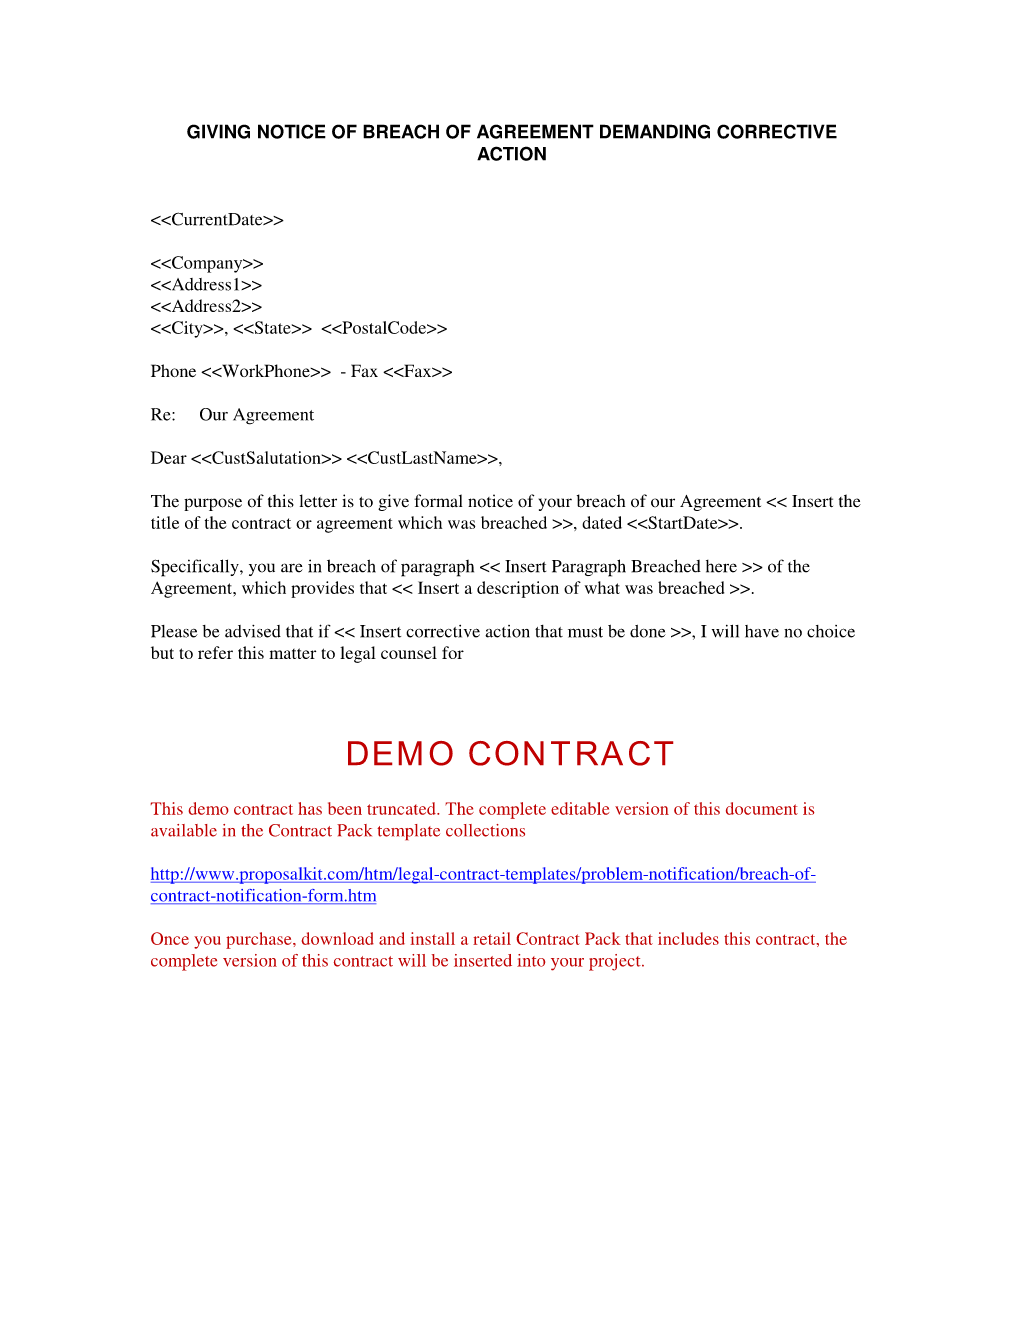 Breach Of Contract Notification Form  Notification Of Problem